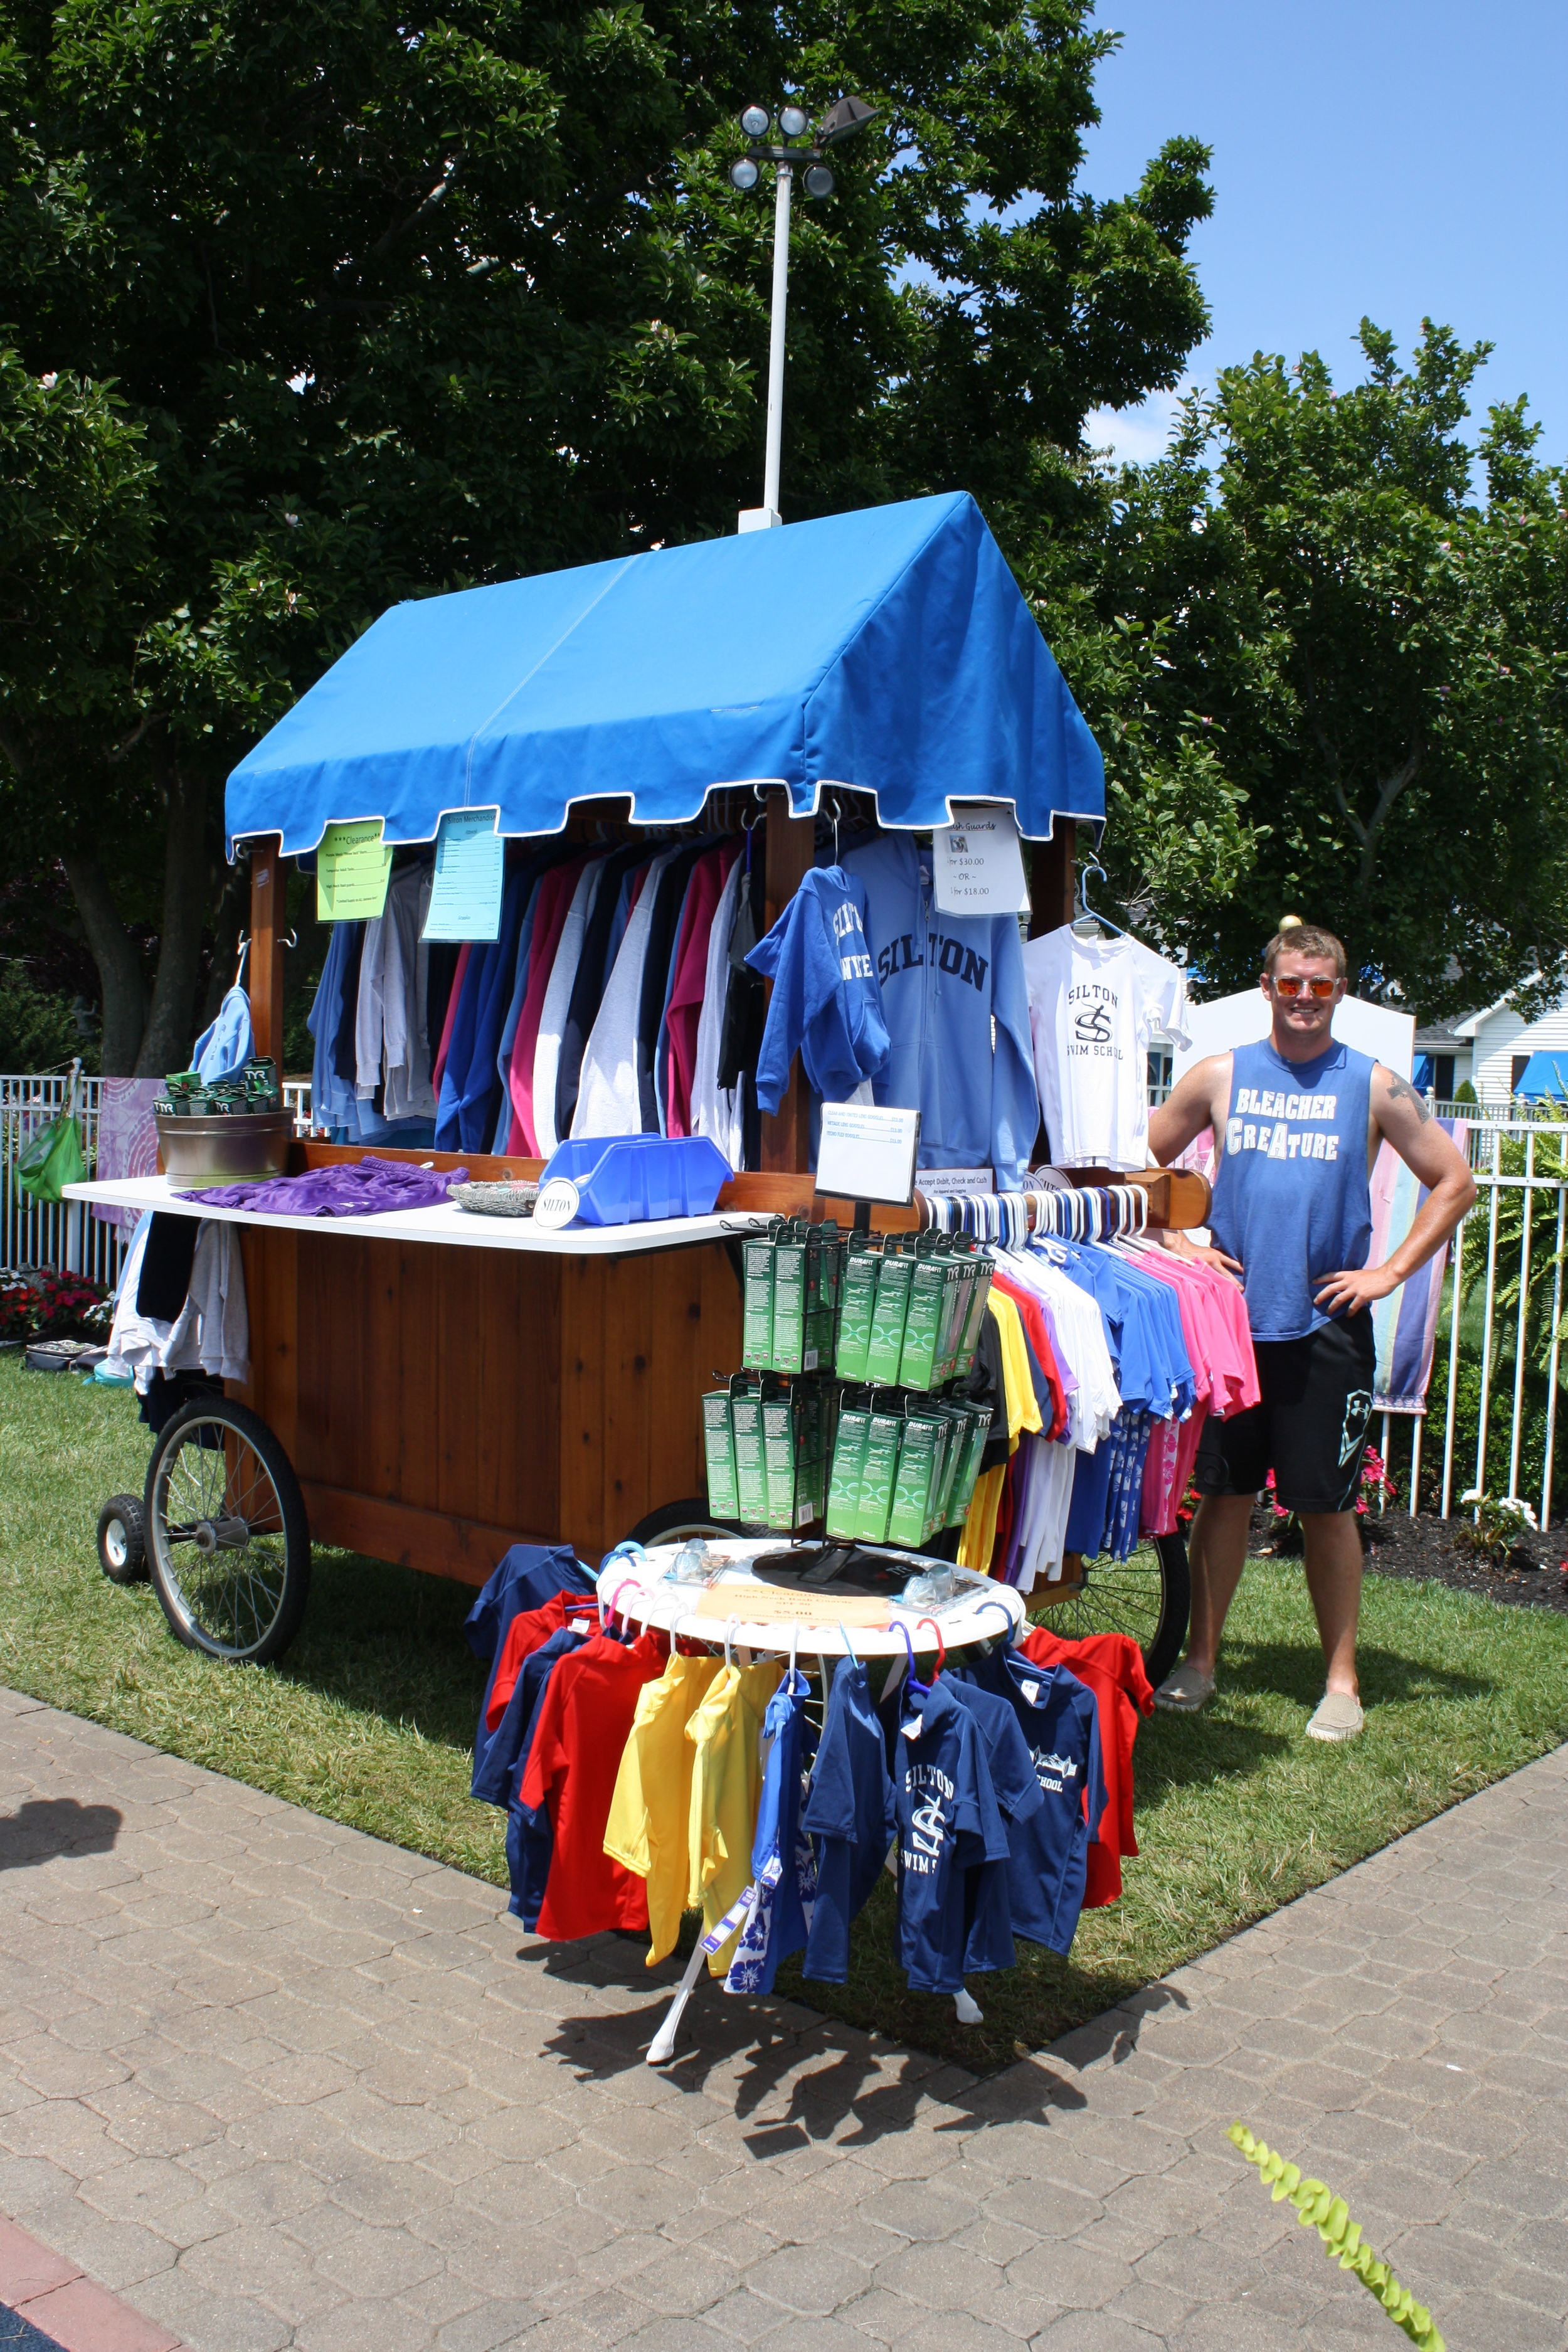 Our Silton Cart will be out on every Saturday morning displaying all merchandise!